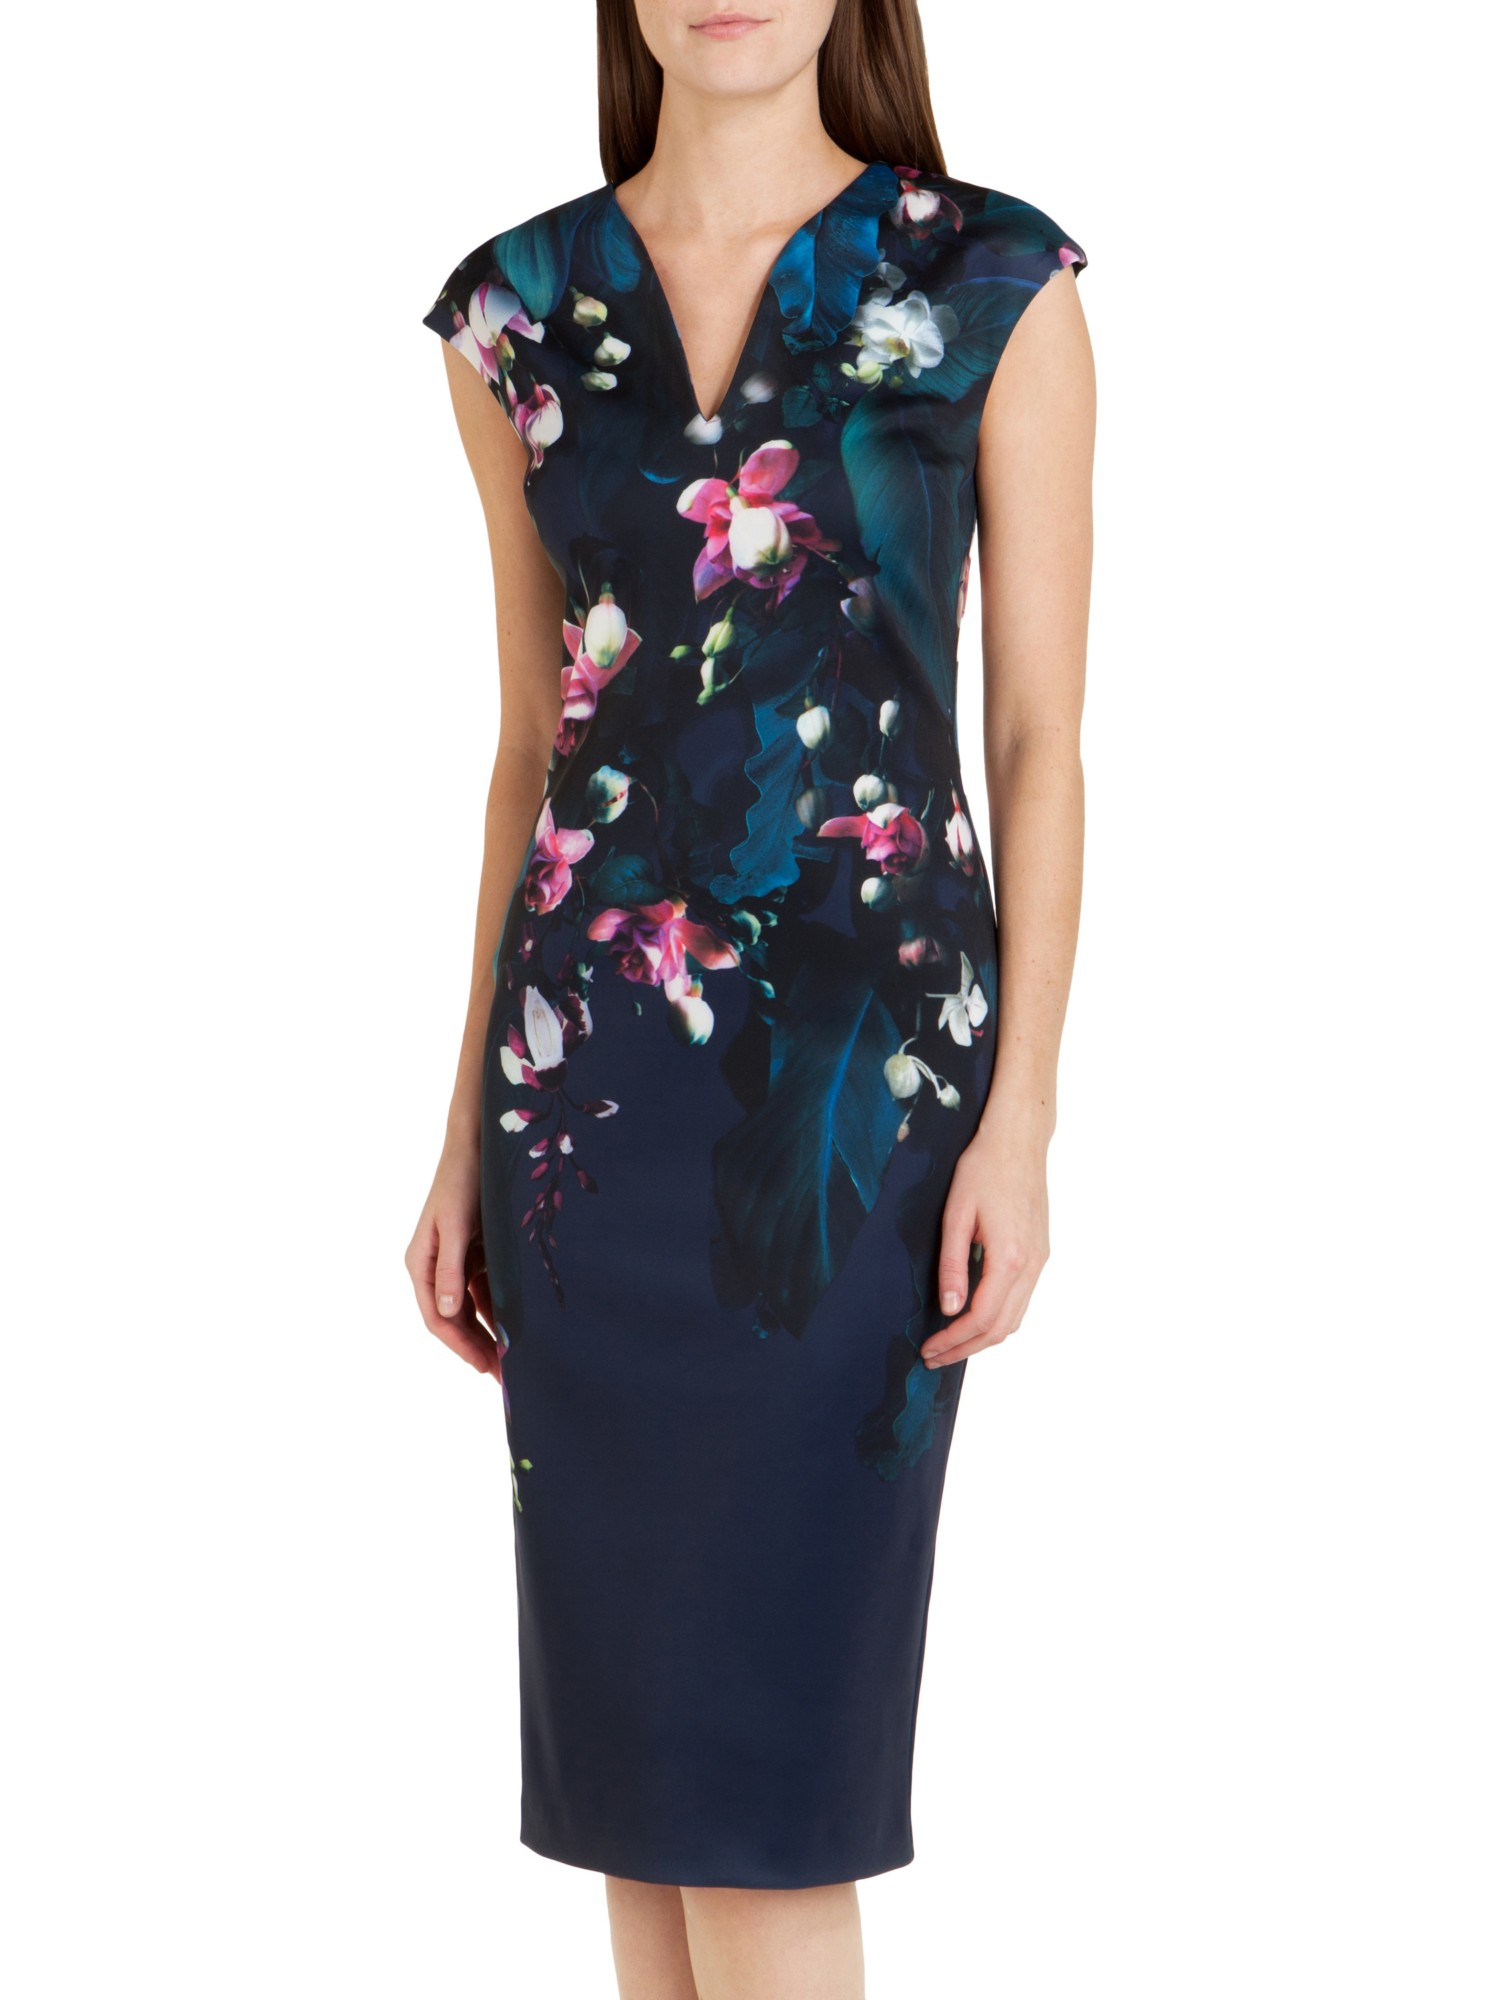 TED BAKER WOMEN S CLOTHING, DRESSES, TOPS, PANTS, SHORTS, AND SWIMWEAR. Step into the spotlight every time you wear Ted Baker dresses thanks to their signature floral patterns and statement silhouettes.